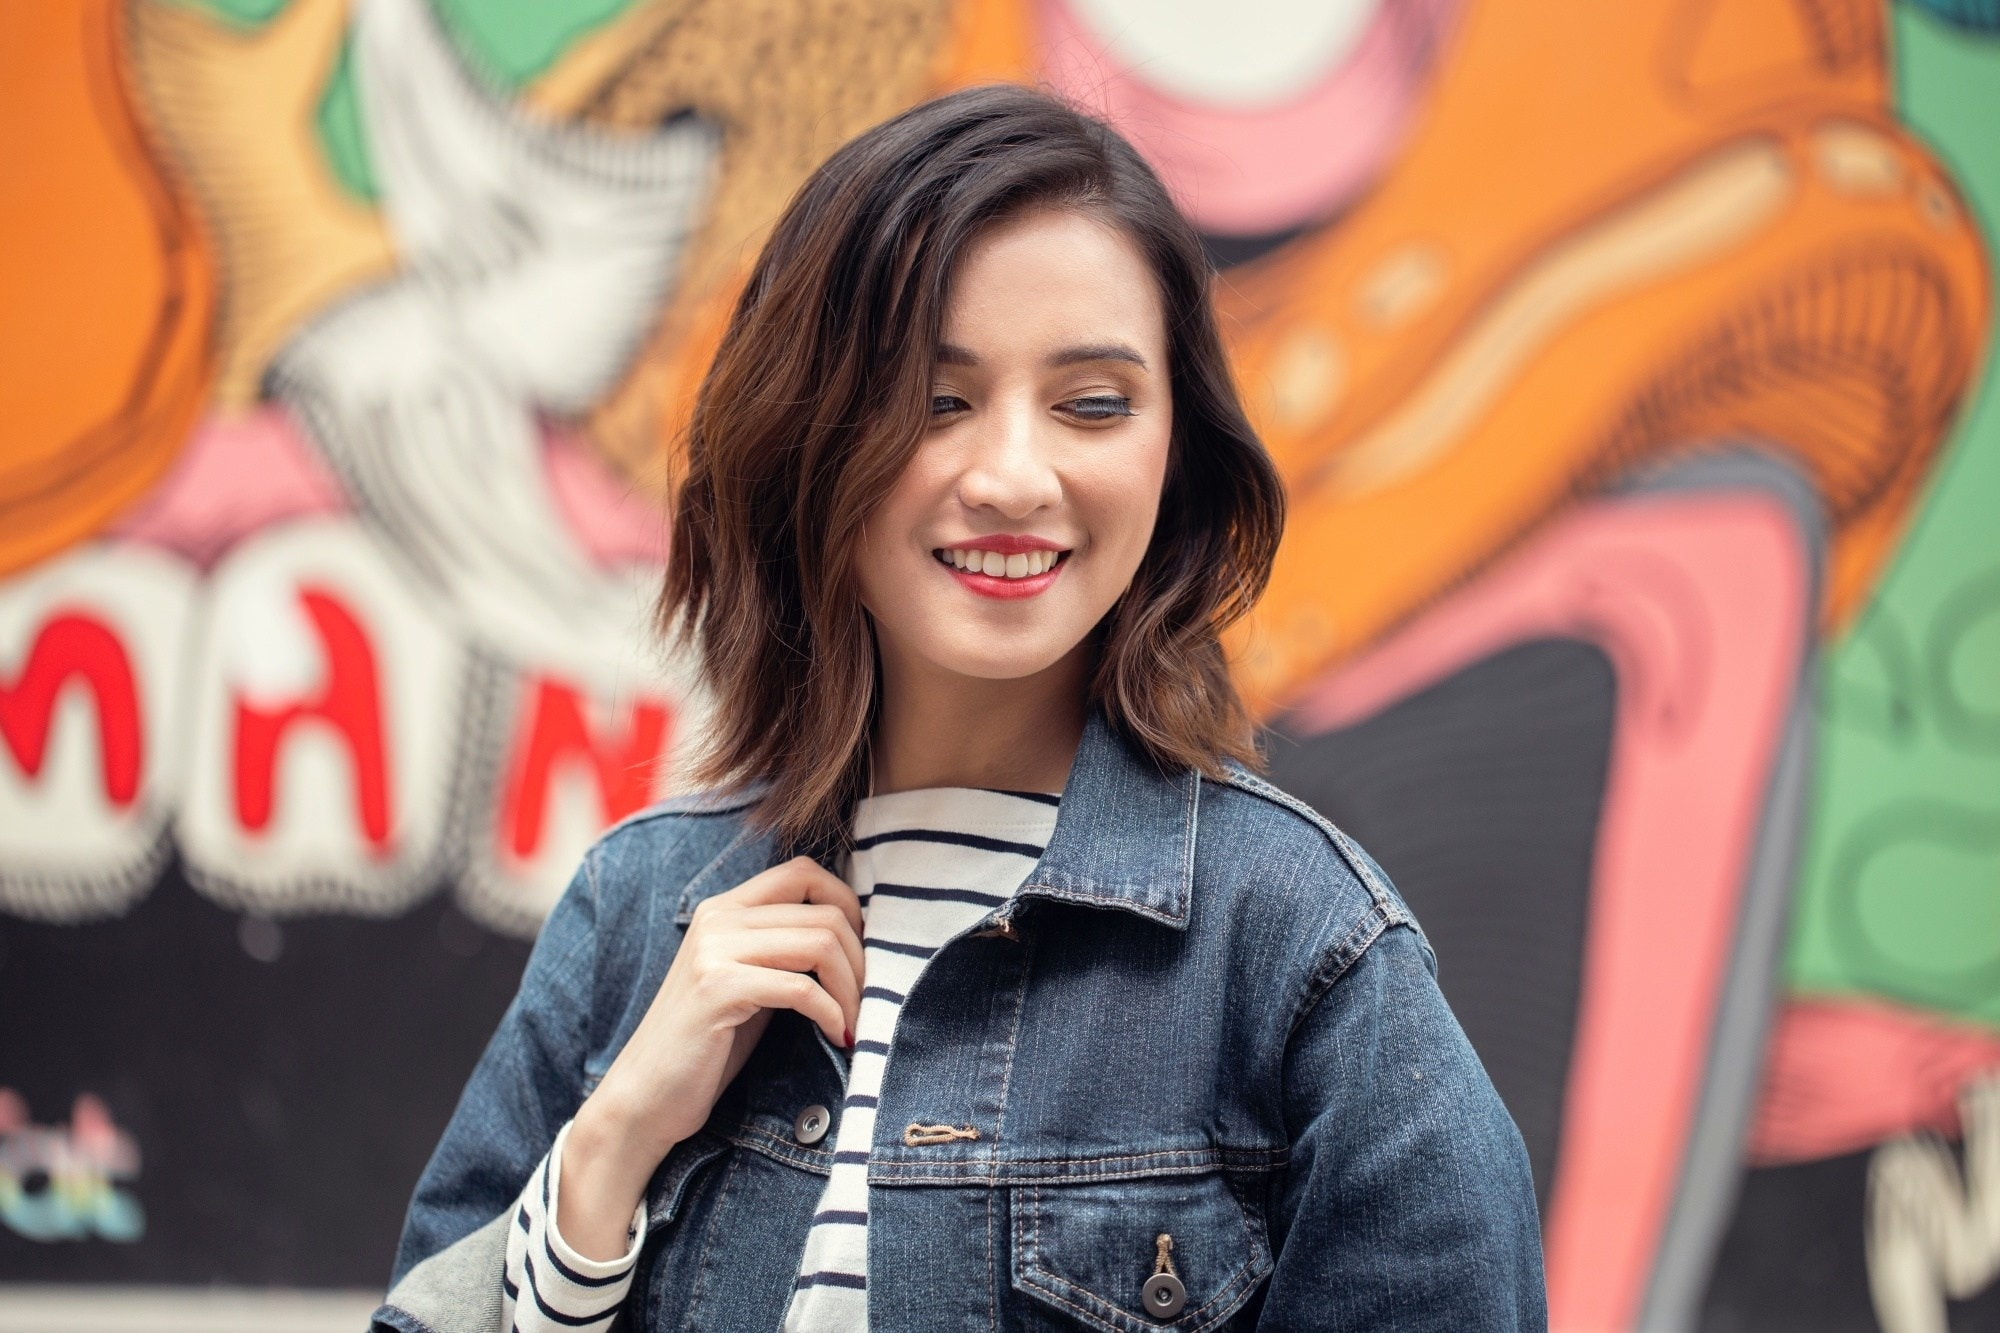 Asian woman wearing a denim jacket, smiling with her messy hair look